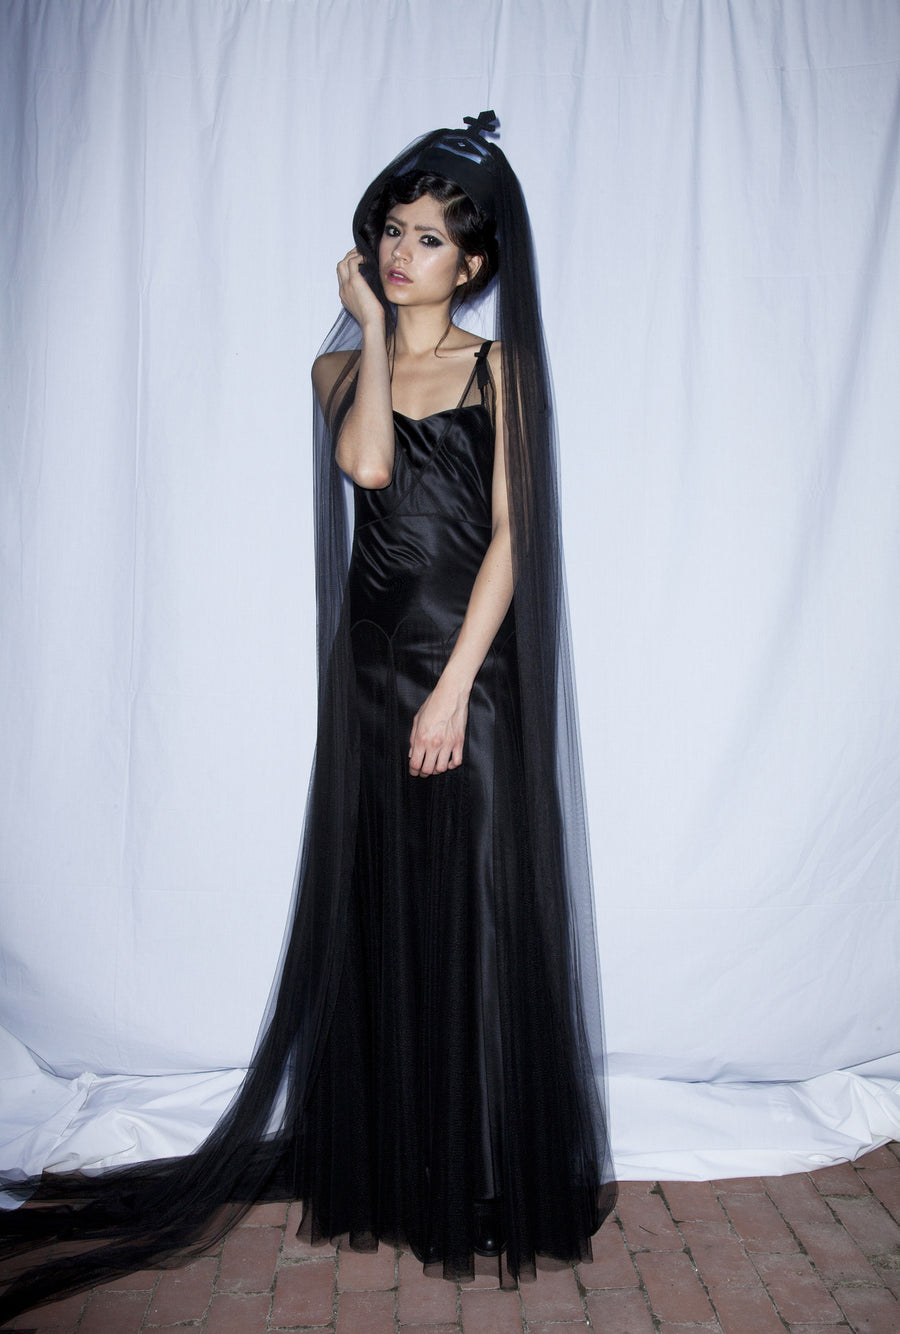 Catalina IMG Model Wendy Nichol Clothing Designer First Fashion Runway Show Saints of the Zodiac Astrological Sign Aquarius Gown Water Bearer Elizabeth Street Sculpture Garden Handmade in NYC New York City Made to Order Made to Measure Custom Tailoring Bespoke Sheer Black Silk Tulle Mesh Net cut out lace deep V plunge neck Dress Gown Silk Satin Slip Dress Sleeveless Ribbon straps Black Veil Leather Crown Gothic Victorian Elizabethan Queen Sea Witch Summer Beach Bride Wedding Black Tie Event